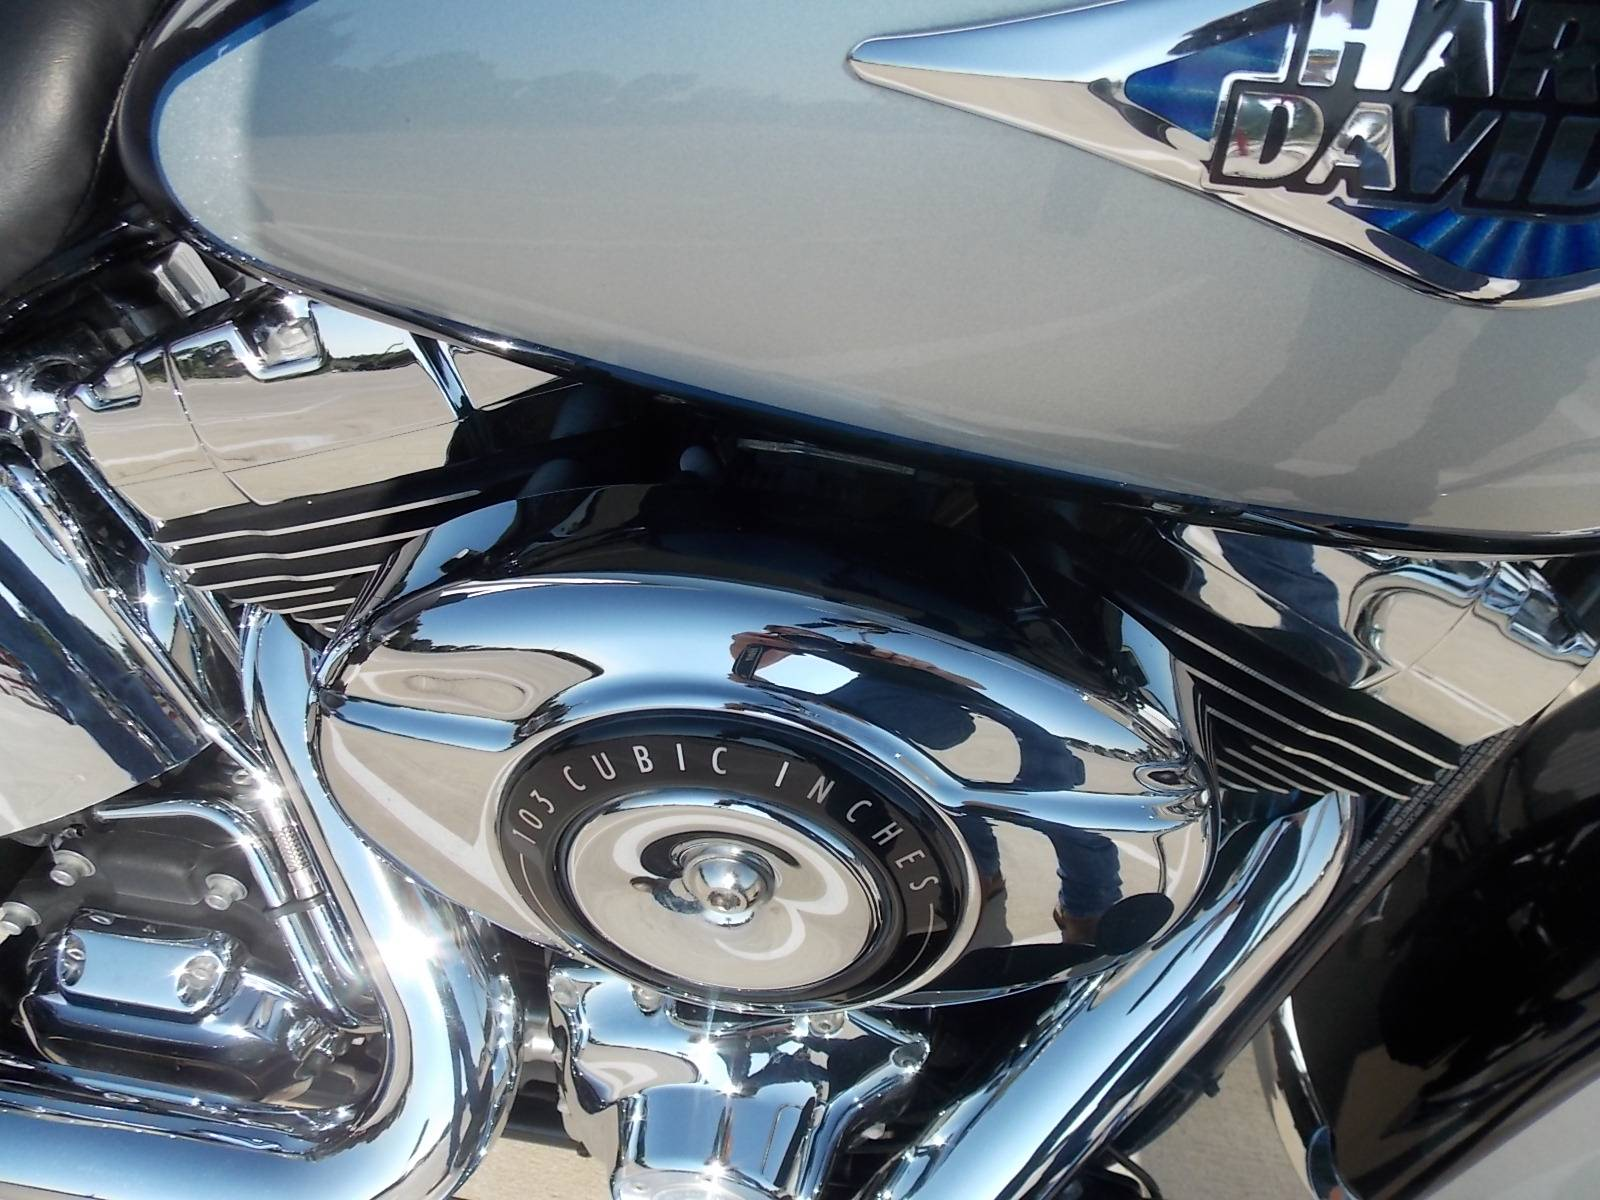 2013 Harley-Davidson Heritage Softail® Classic in Springtown, Texas - Photo 3